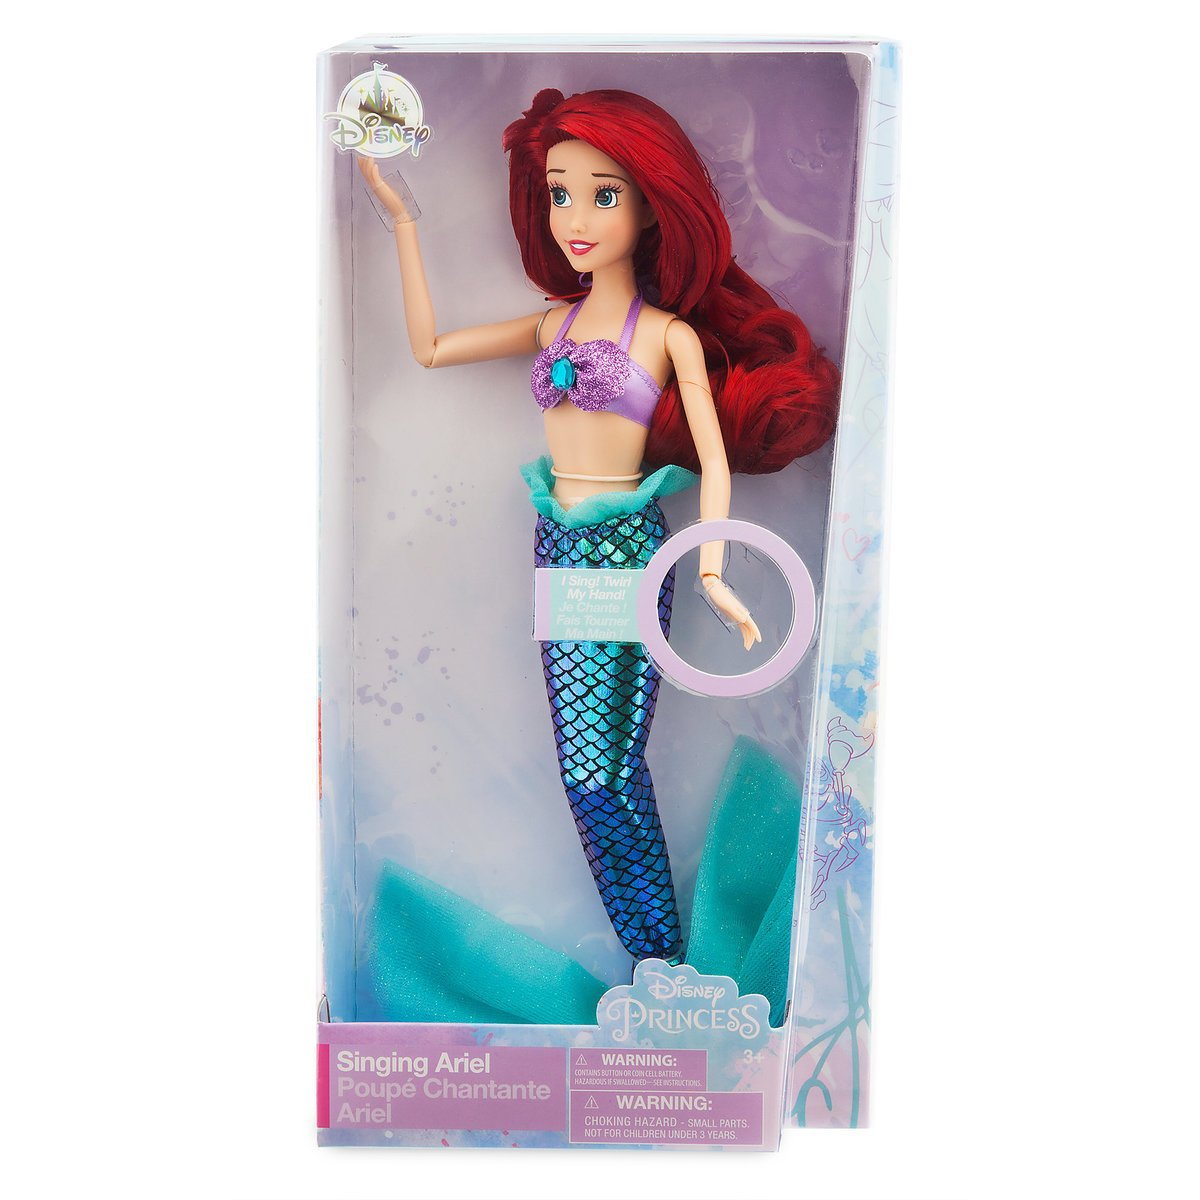 Disney Princess Ariel Singing Doll Part of Your World New with Box